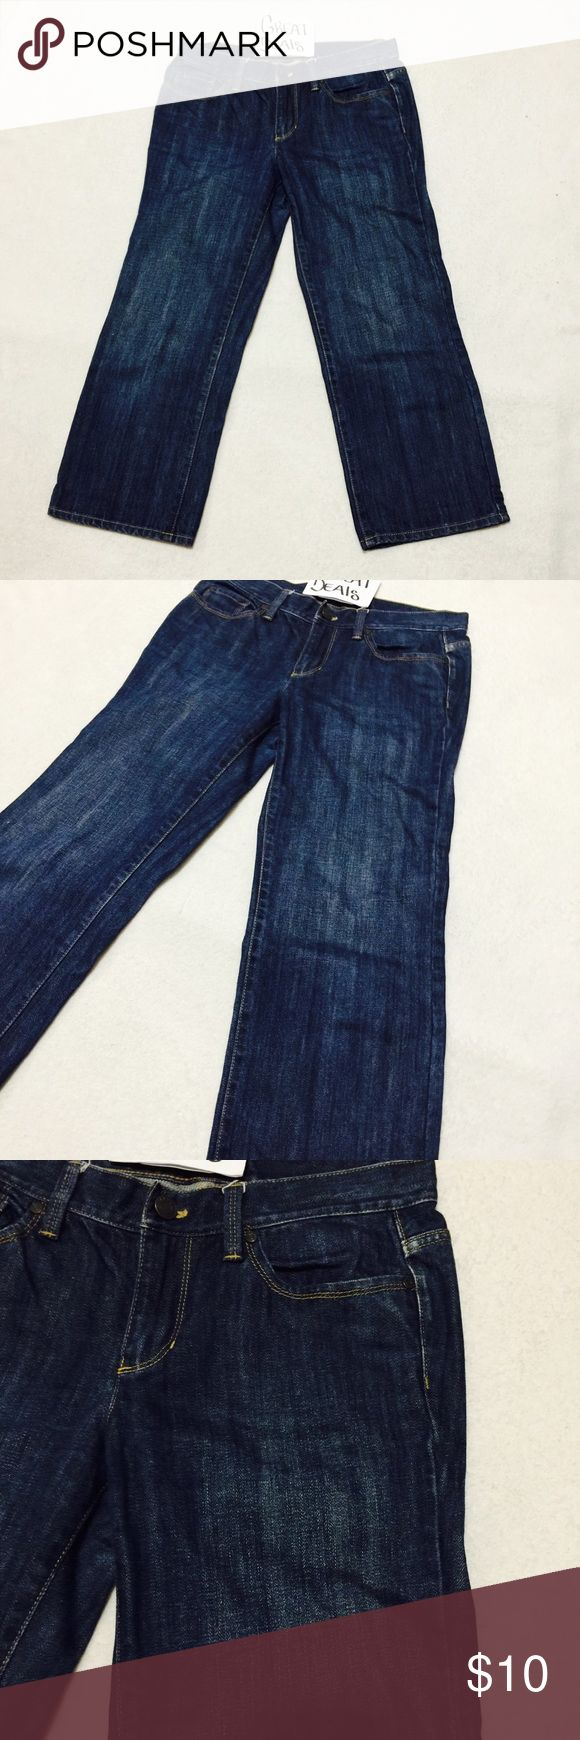 TALBOTS PETITES DARK WASH ANKLE JEANS SZ 4P EUC BARELY USED DARK WASH ANKLE JEANS  SIZE 4P LEN 31 INSEAM 22 SUPER LIGHT WEIGHT  MANNEQUIN IS SIZE MED. PLEASE ASK ANY QUESTIONS ❤️❤️NEW INVENTORY❤️❤️  ✅BUNDLE AND SAVE ON SHIPPING 20% OFF ON ANY BUNDLES MY PRICES ARE GREAT AND THERE NWT OR NWOT UNLESS STATED  THERE NAME BRAND SELLING THEM FOR CHEAP✅  ***DONT FORGET TO FOLLOW I DELETE AND RELIST***  # GREAT DEALS Talbots Pants Ankle & Cropped